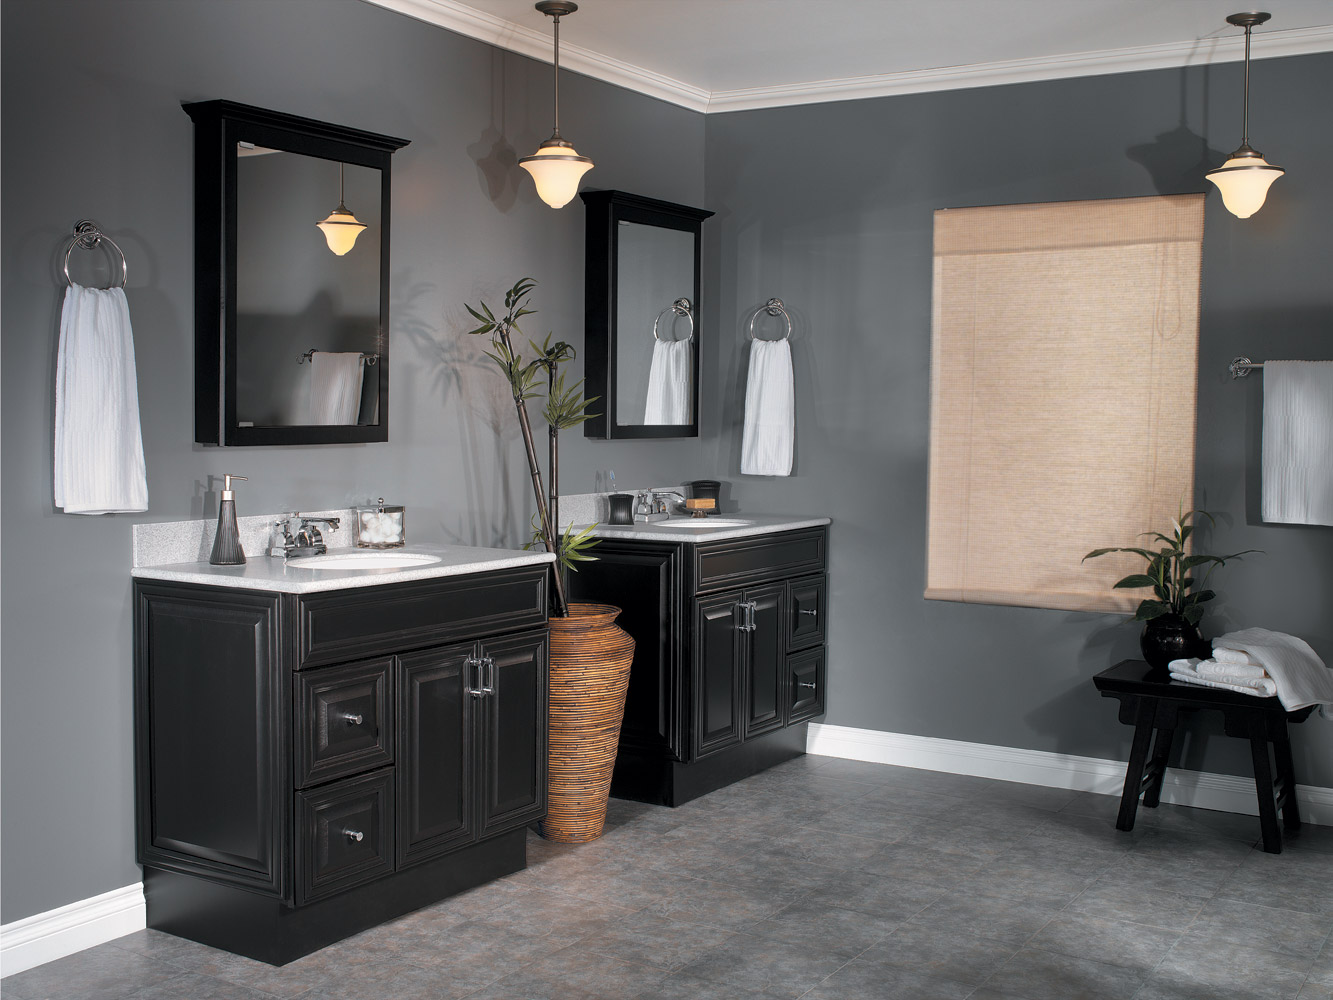 The best bathroom vanity ideas midcityeast for Best bathroom vanities 2016